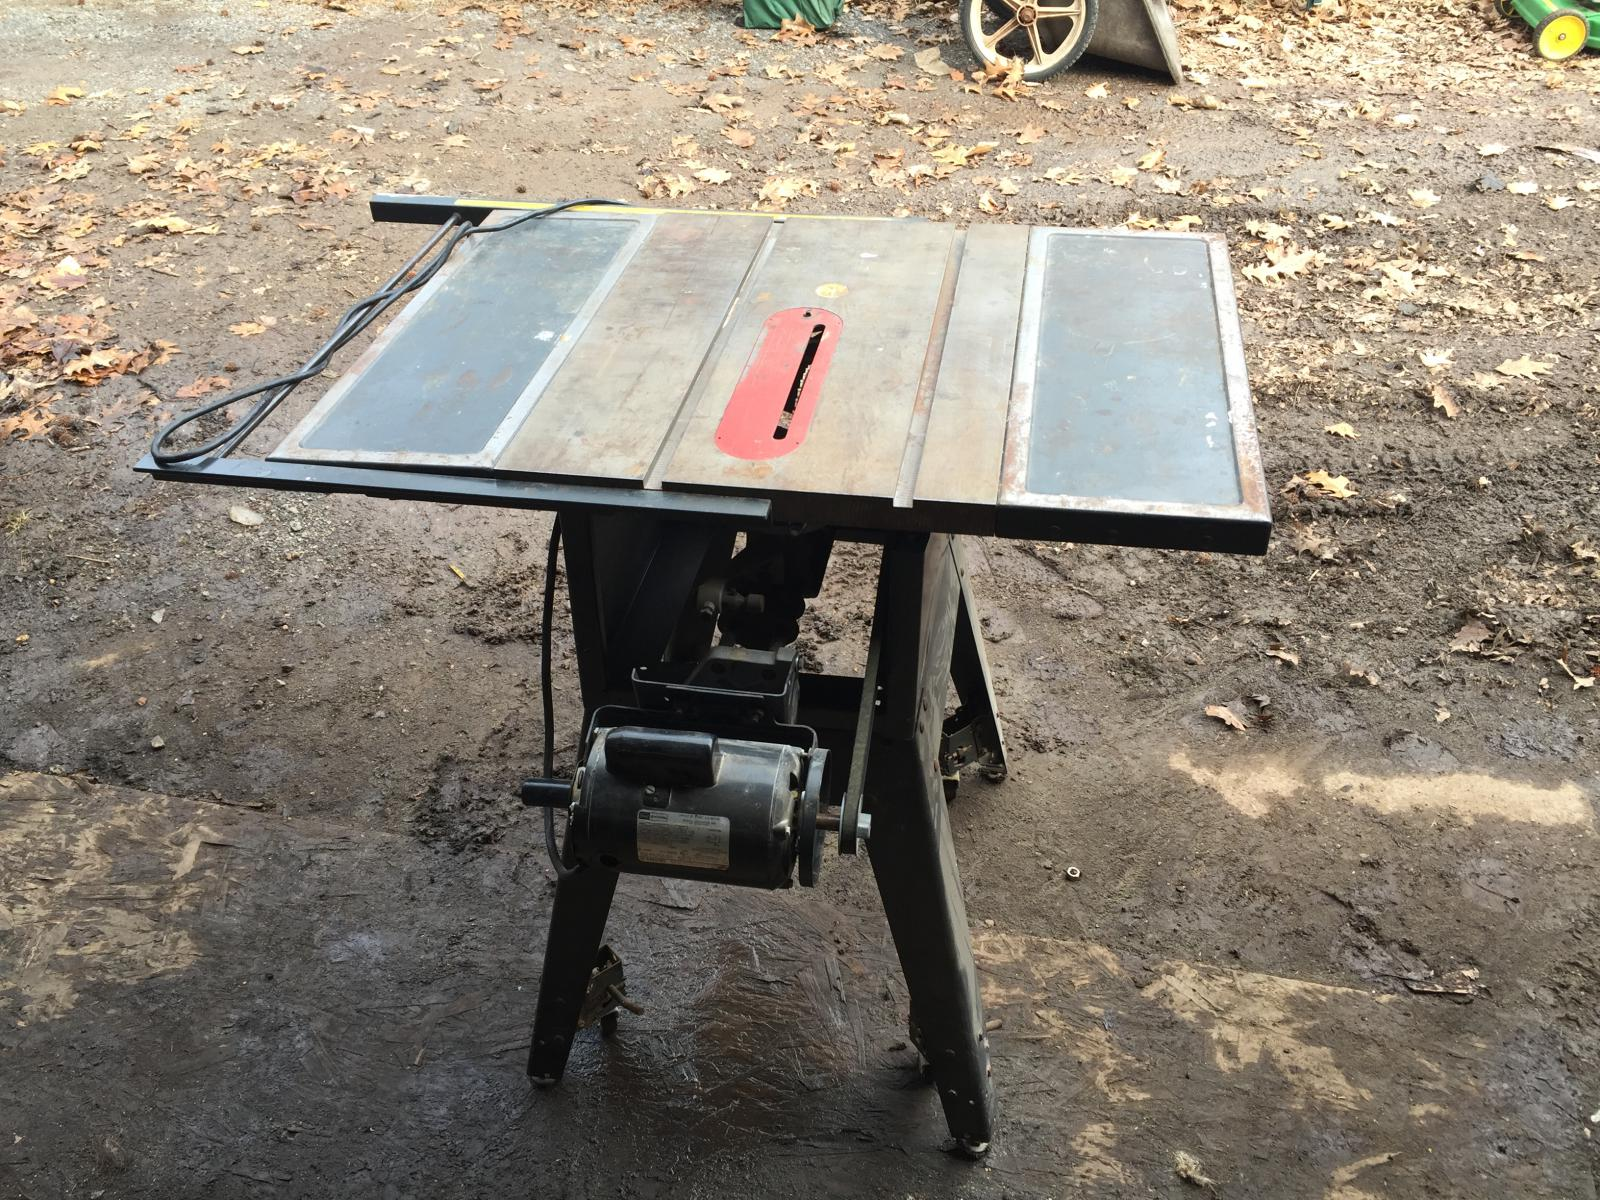 Craftsman table saw 10 inch ebay for 10 inch table saw craftsman